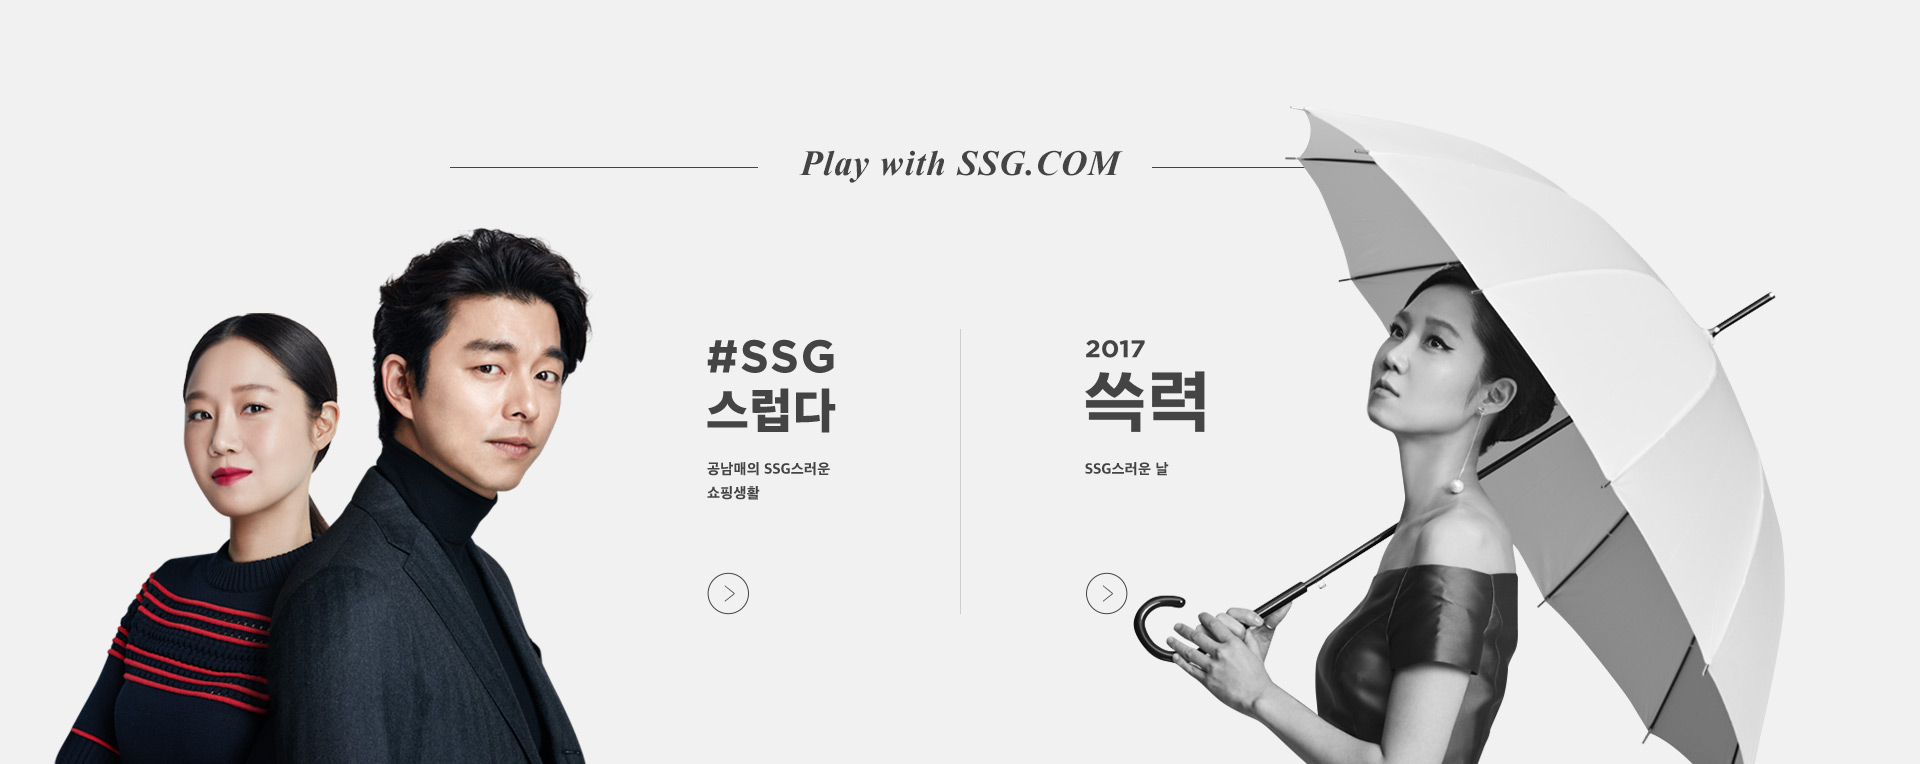 Play with SSG.COM